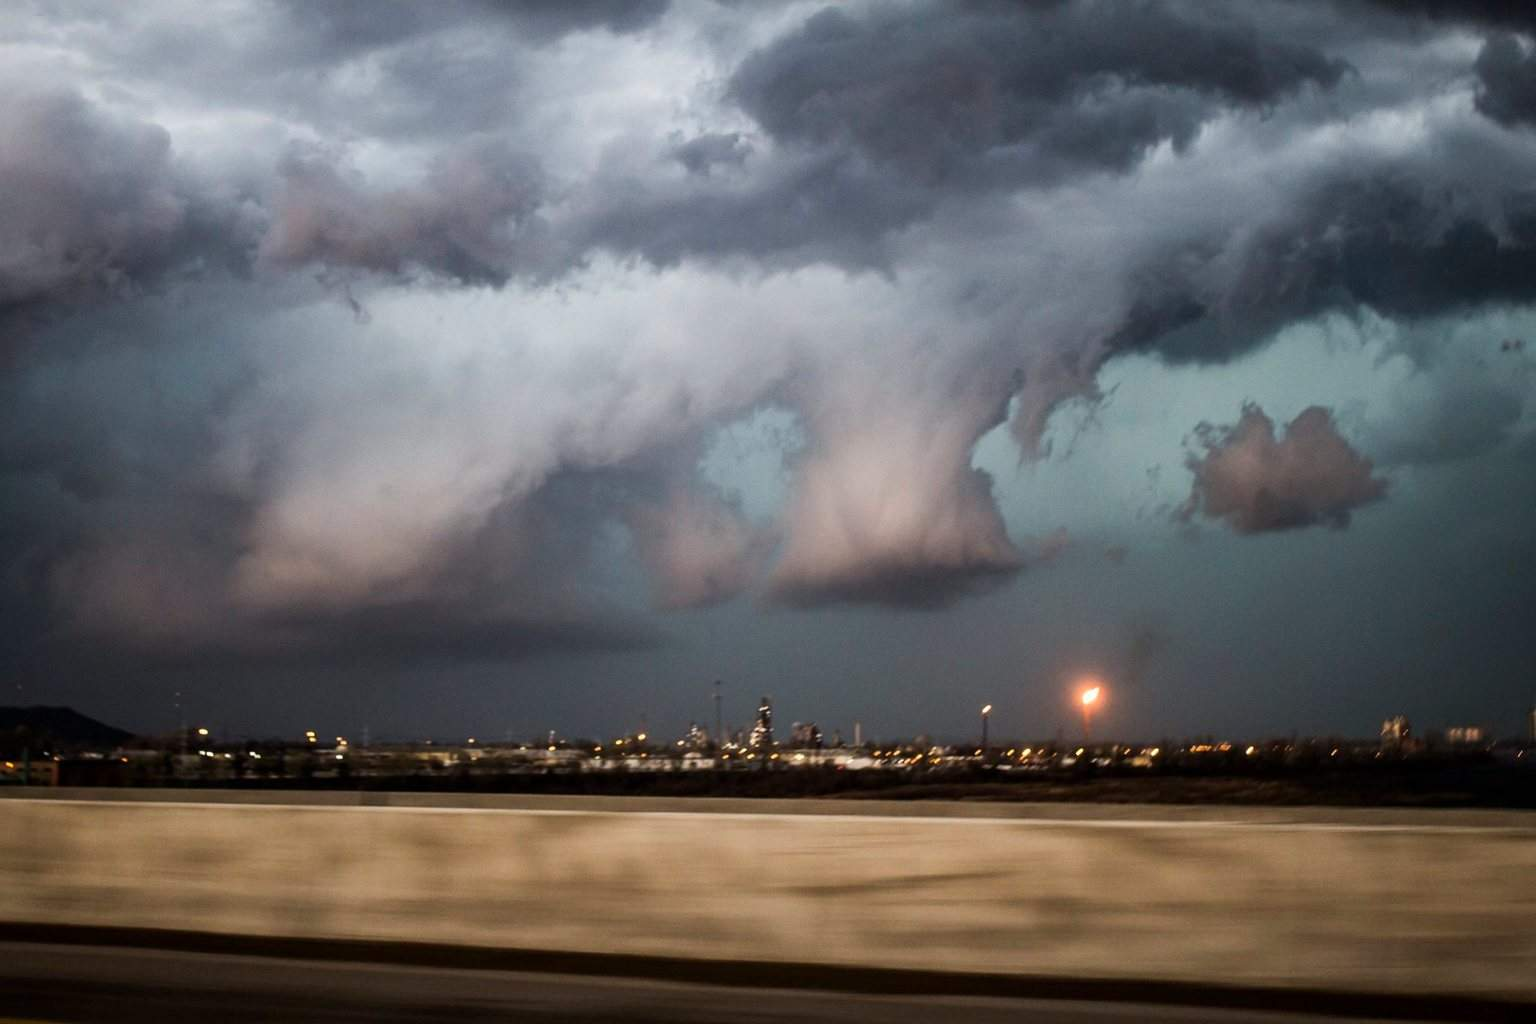 Here's one I thought reminded me of the end of the World. Taken in Tulsa.Here's one I thought reminded me of the end of the World. Taken in Tulsa.